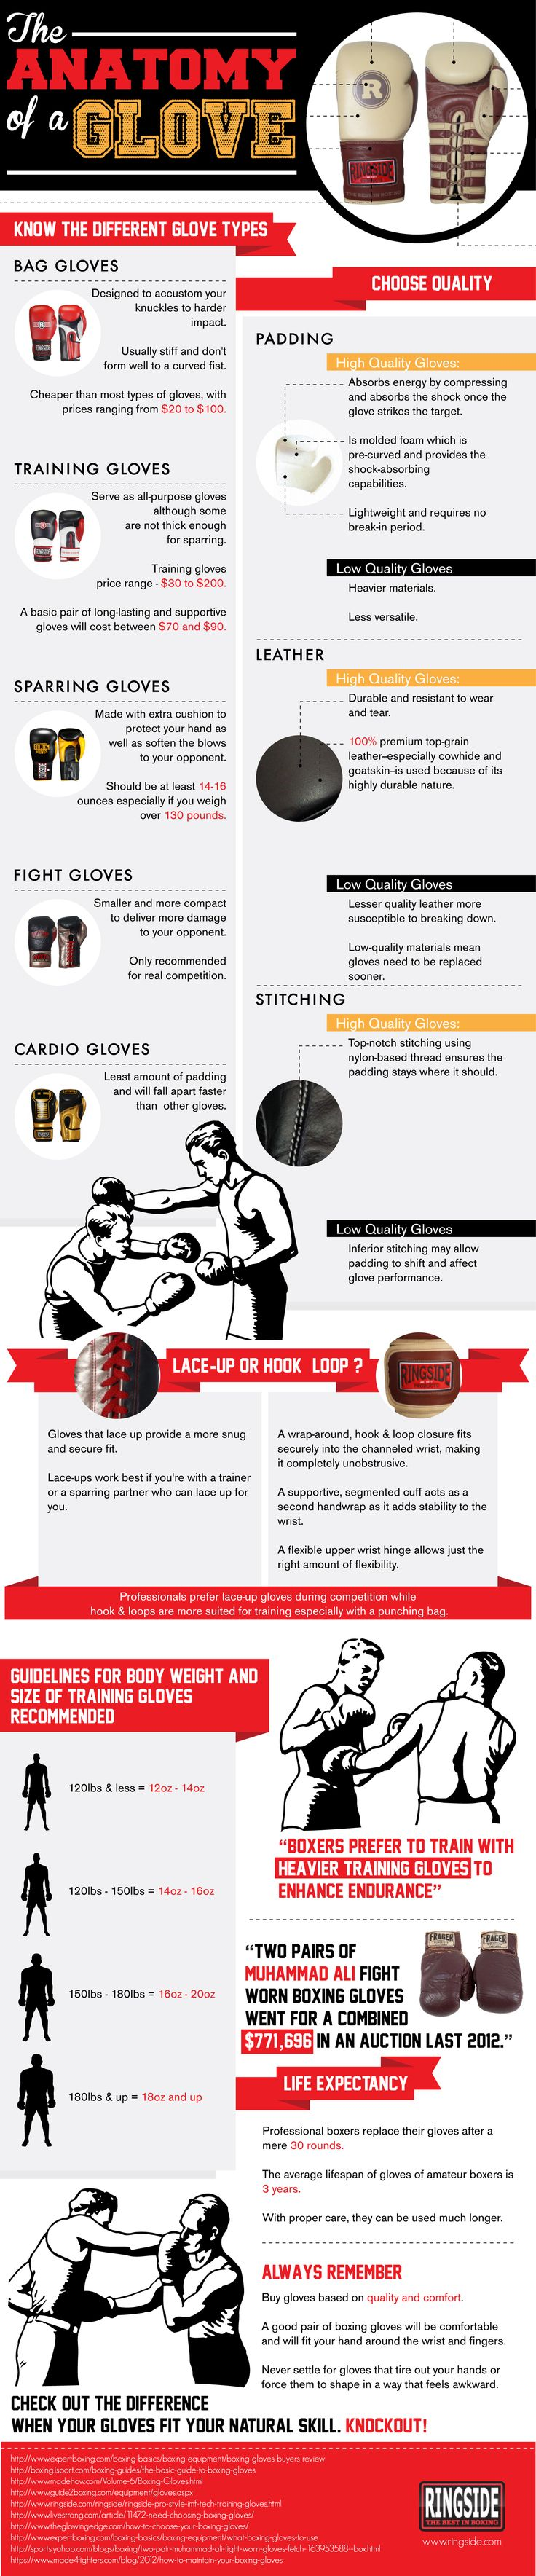 The Anatomy of a Glove - Ringside Boxing Glove Infographic